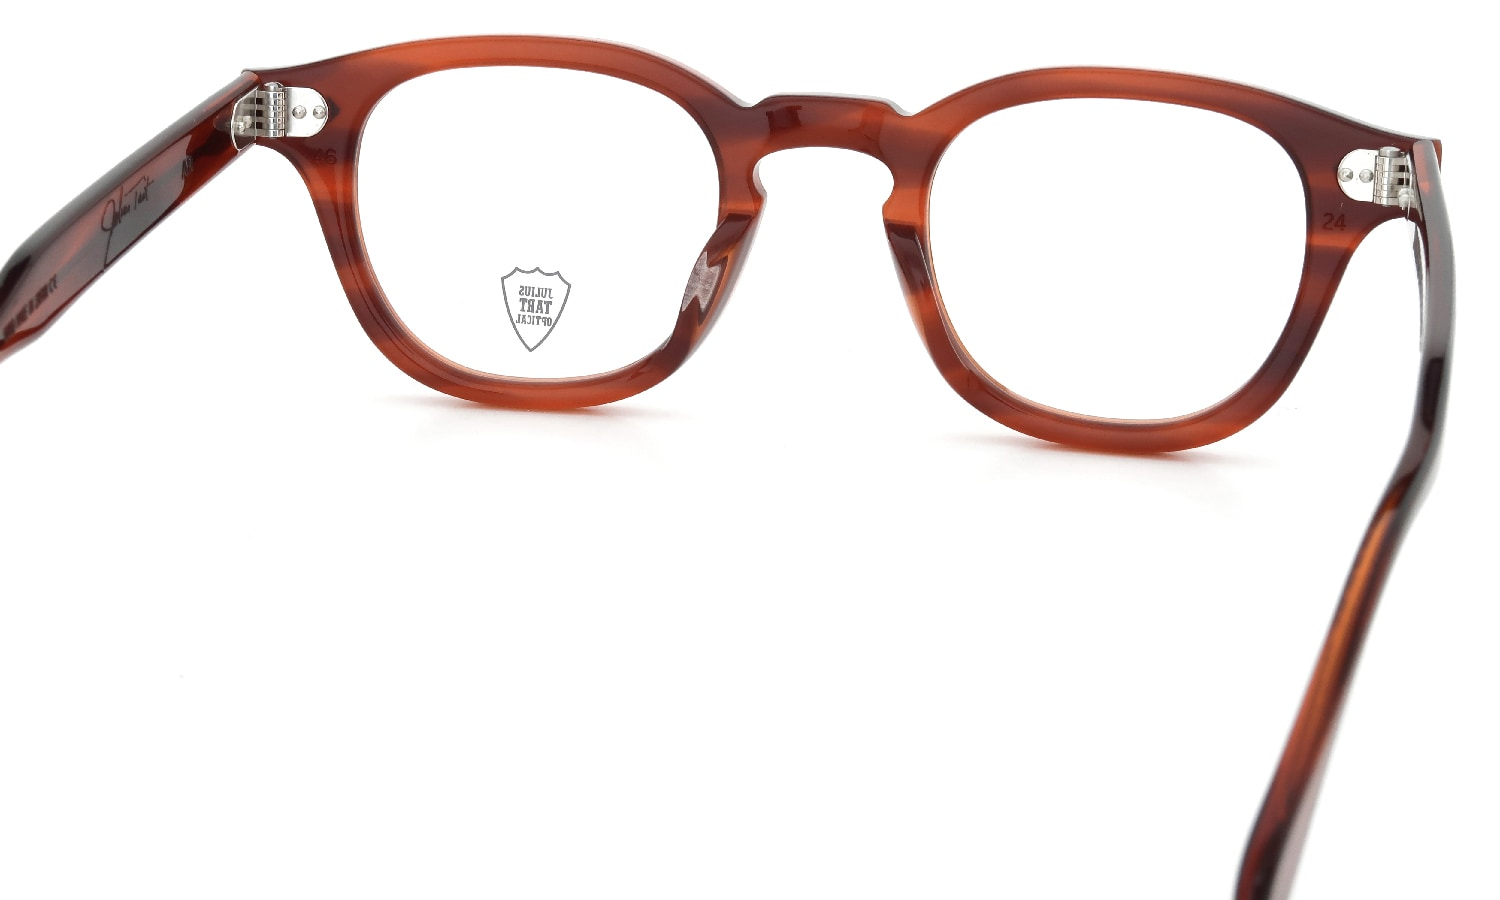 JULIUS TART OPTICAL AR-46-24 AMBER PL-102G